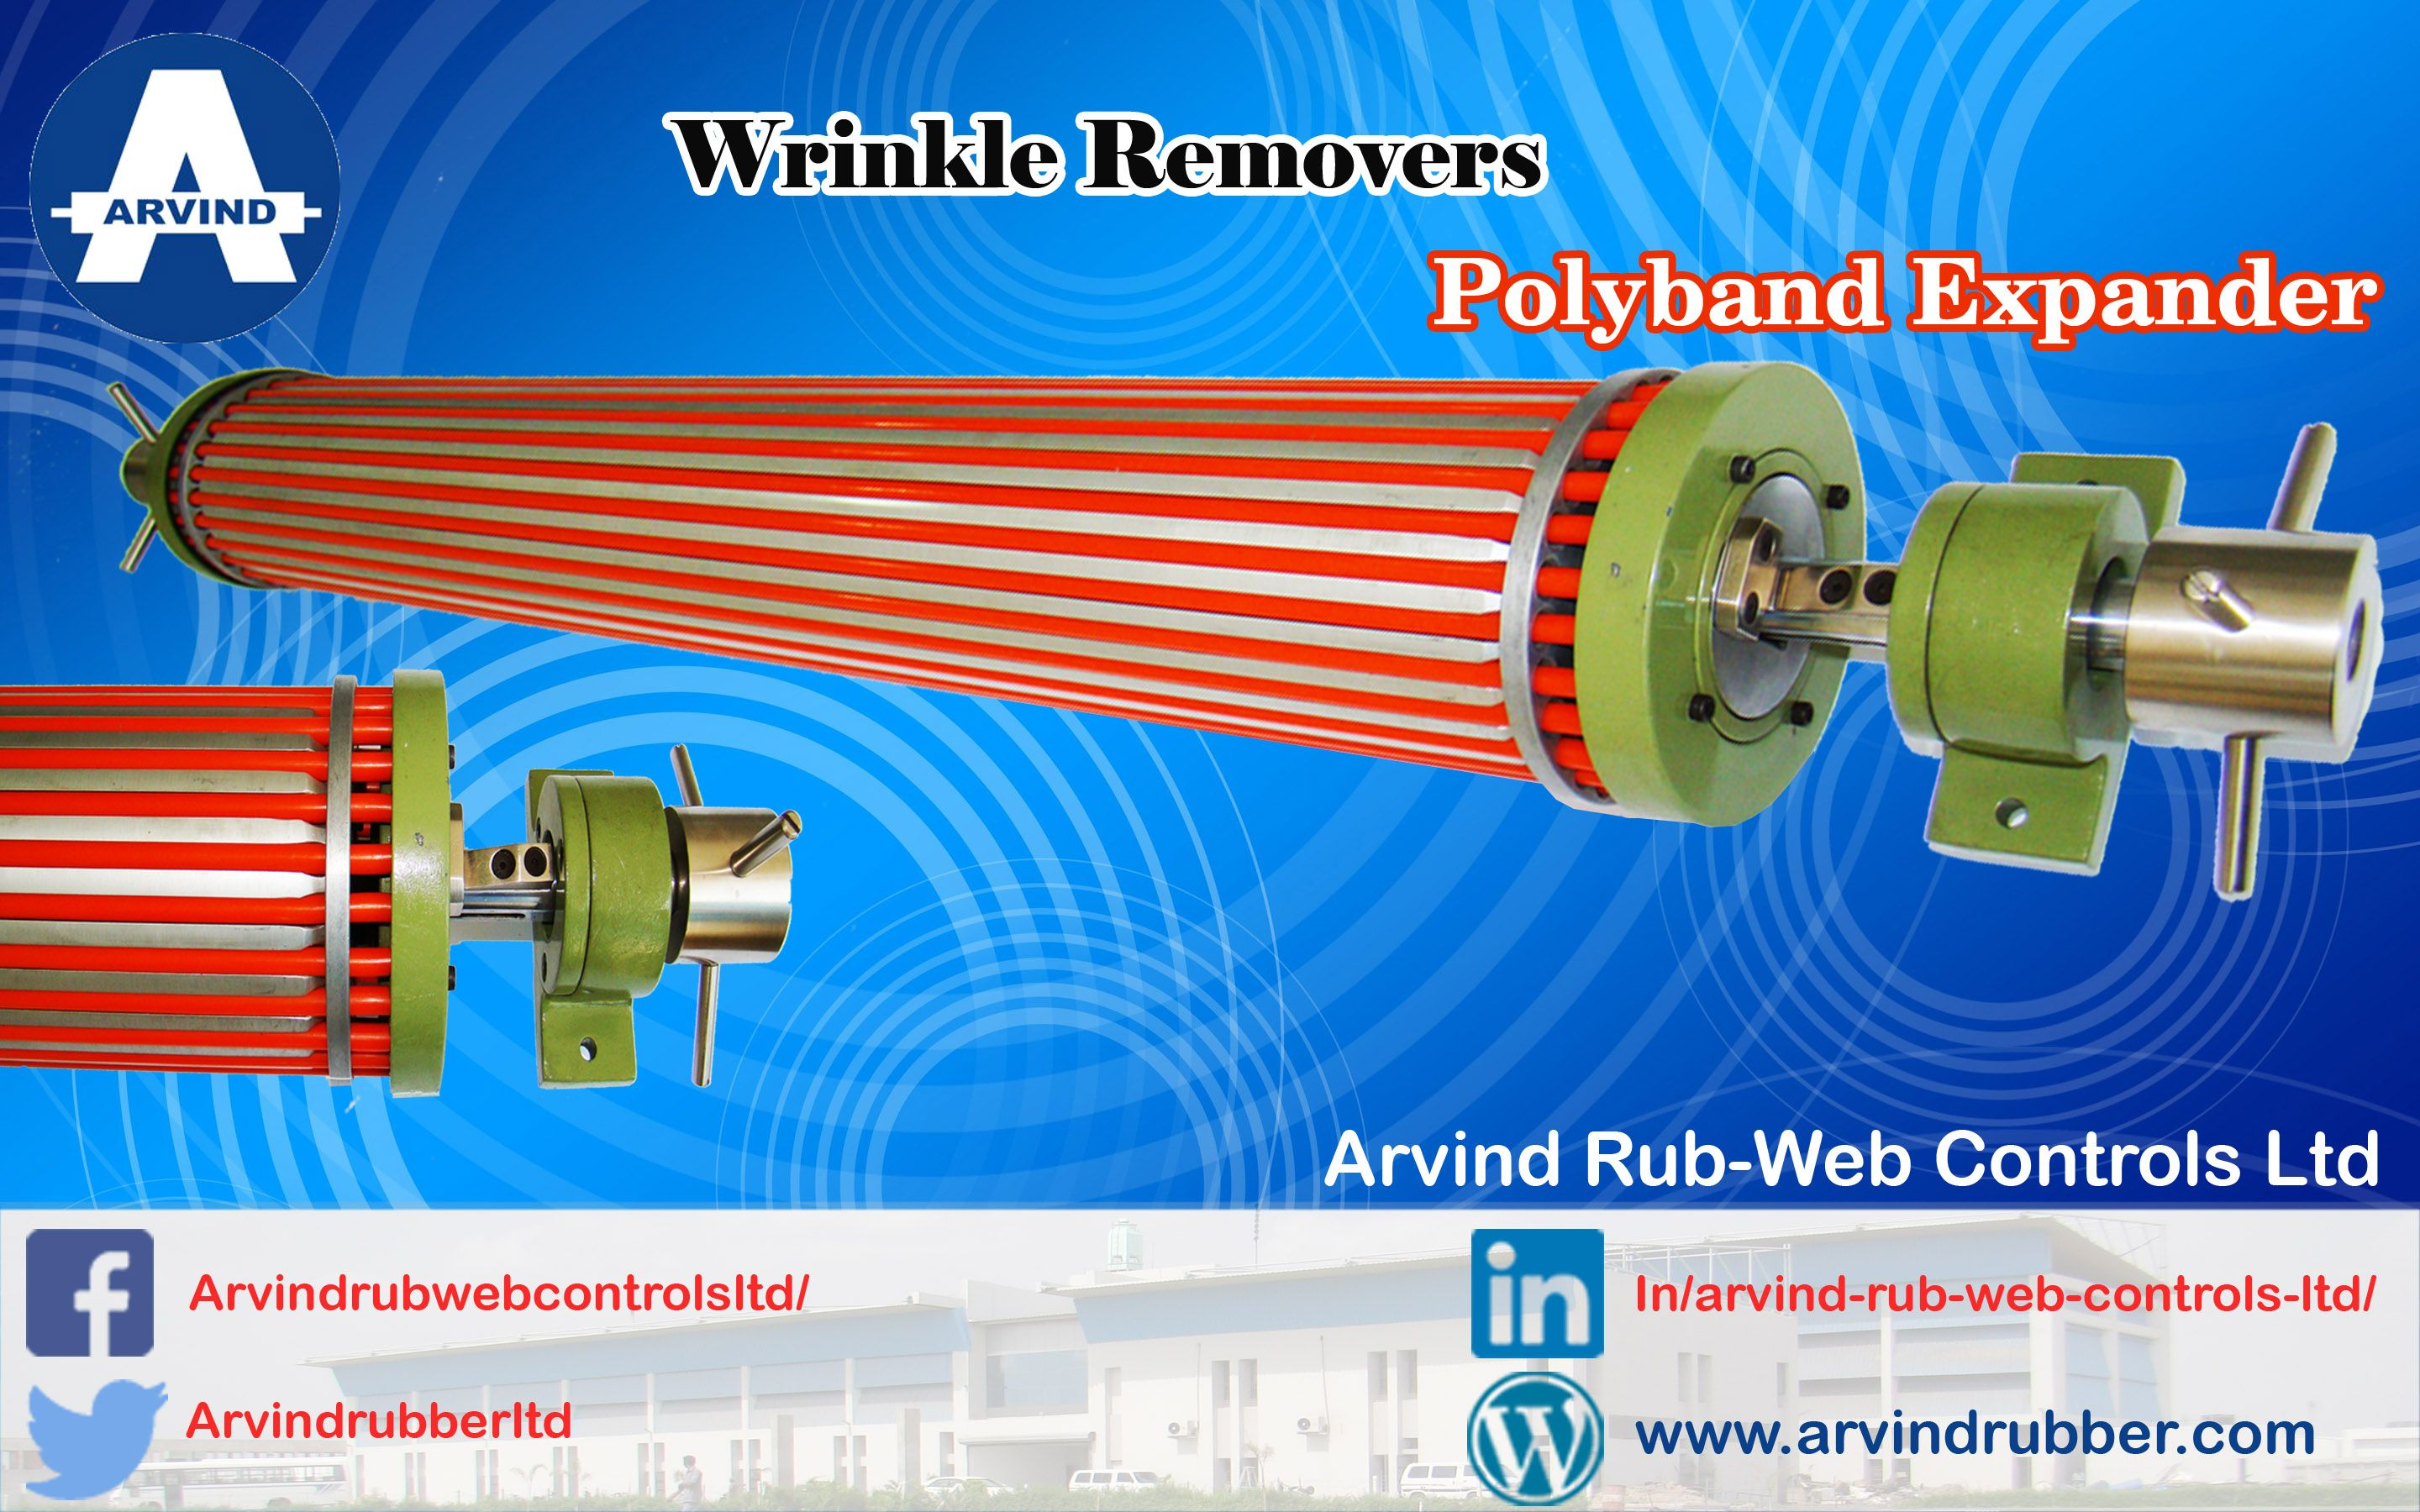 Established In 1984 Arvind Rub Web Controls Ltd Is A Well Known